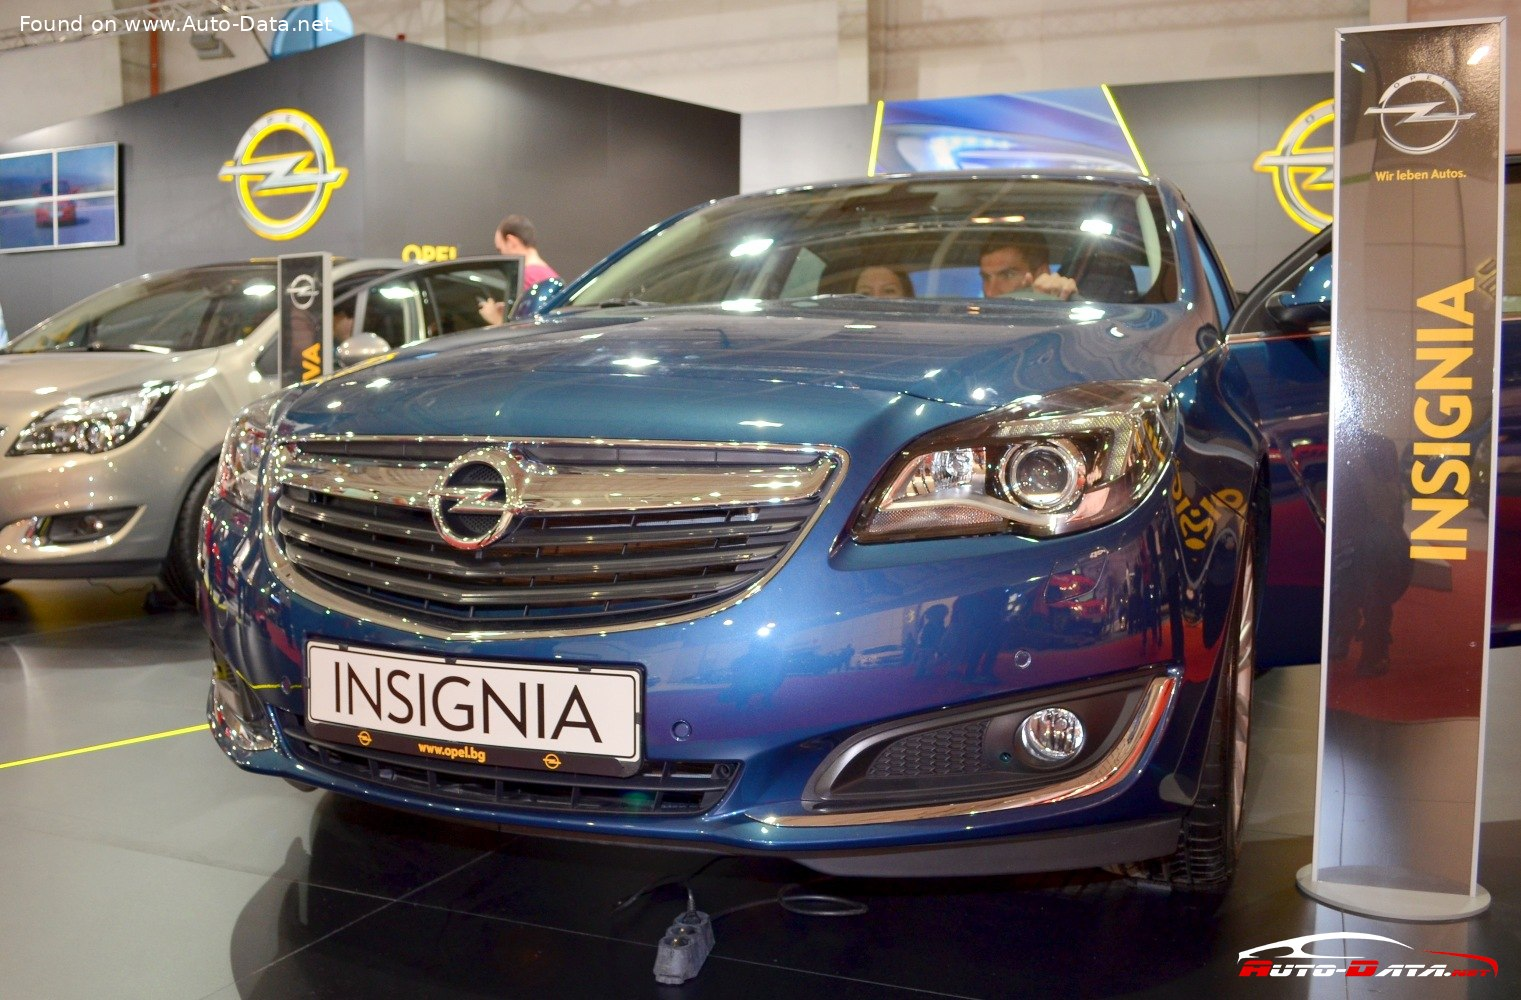 2013 Opel Insignia Sedan A Facelift 2013 Technical Specs Fuel Consumption Dimensions